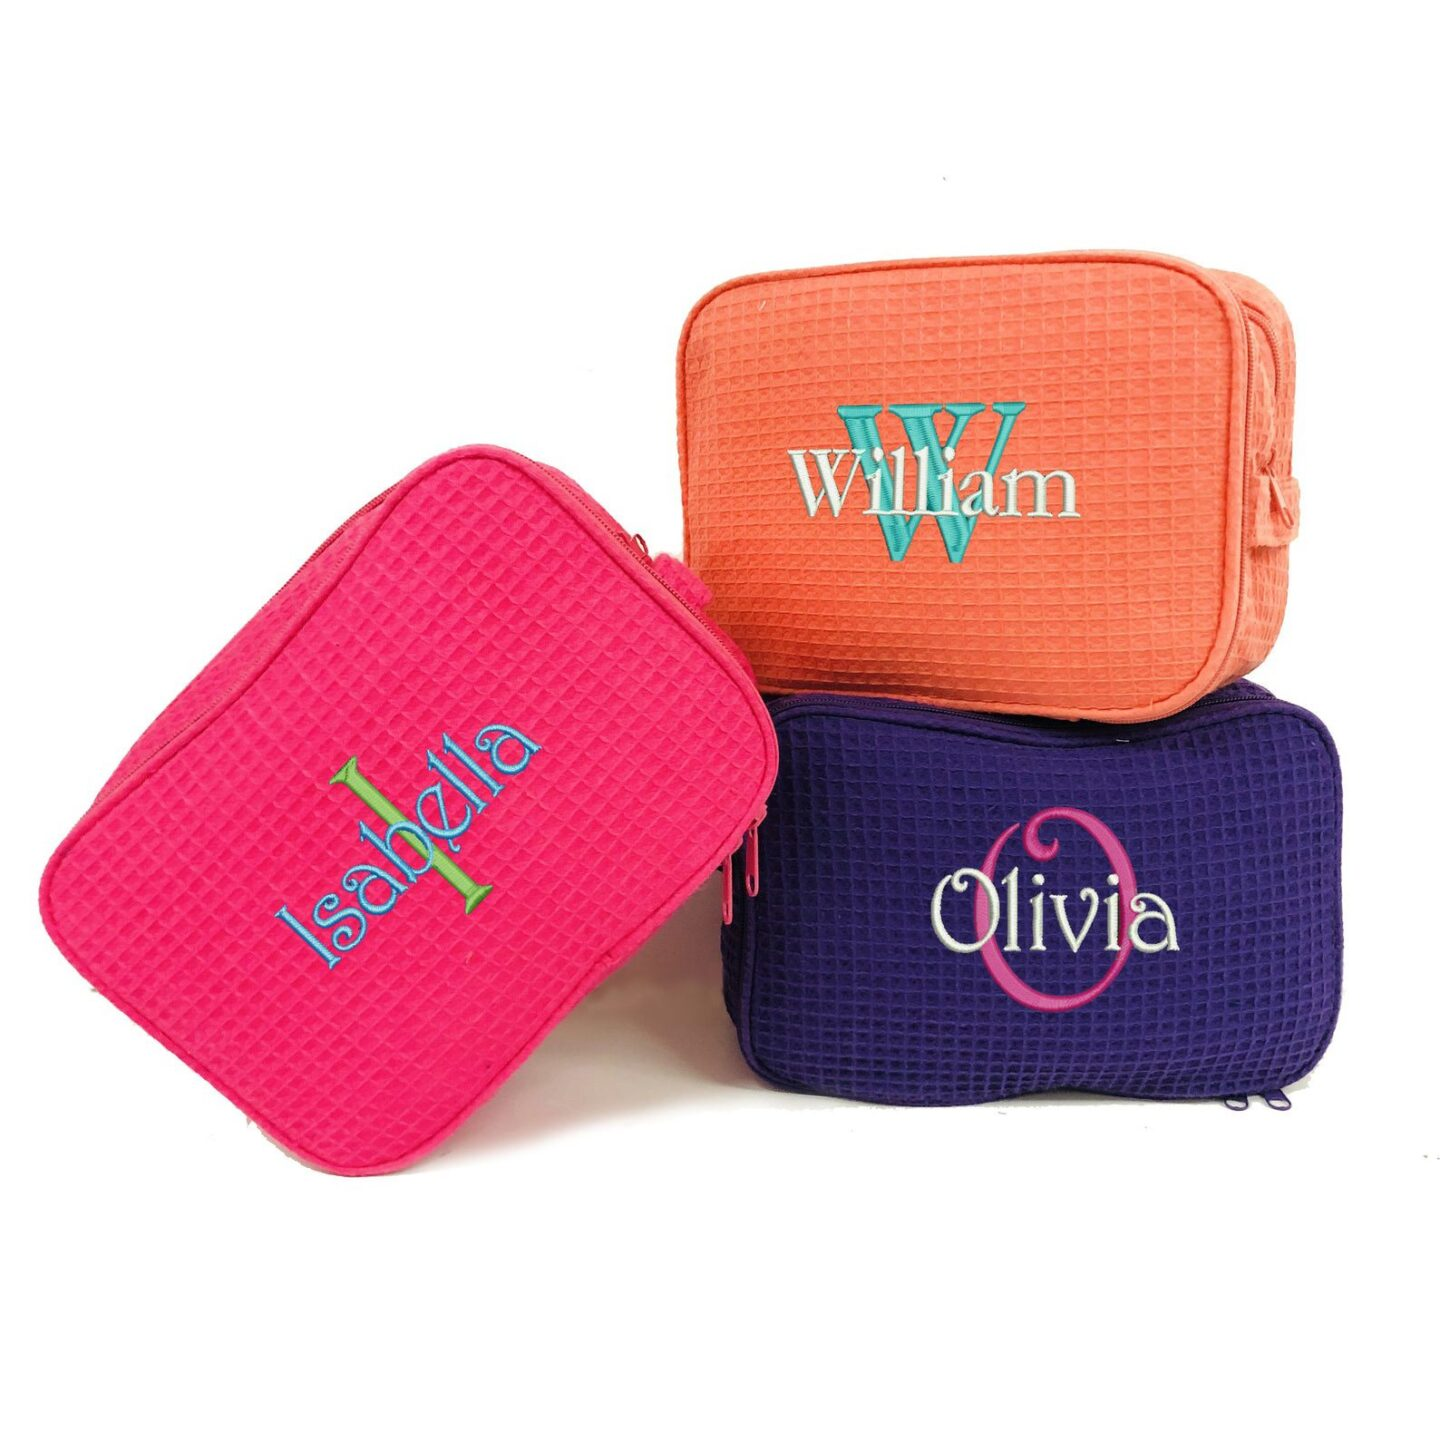 Pink, orange and purple personalized waffle fabric toiletry cases for cruise gift ideas.